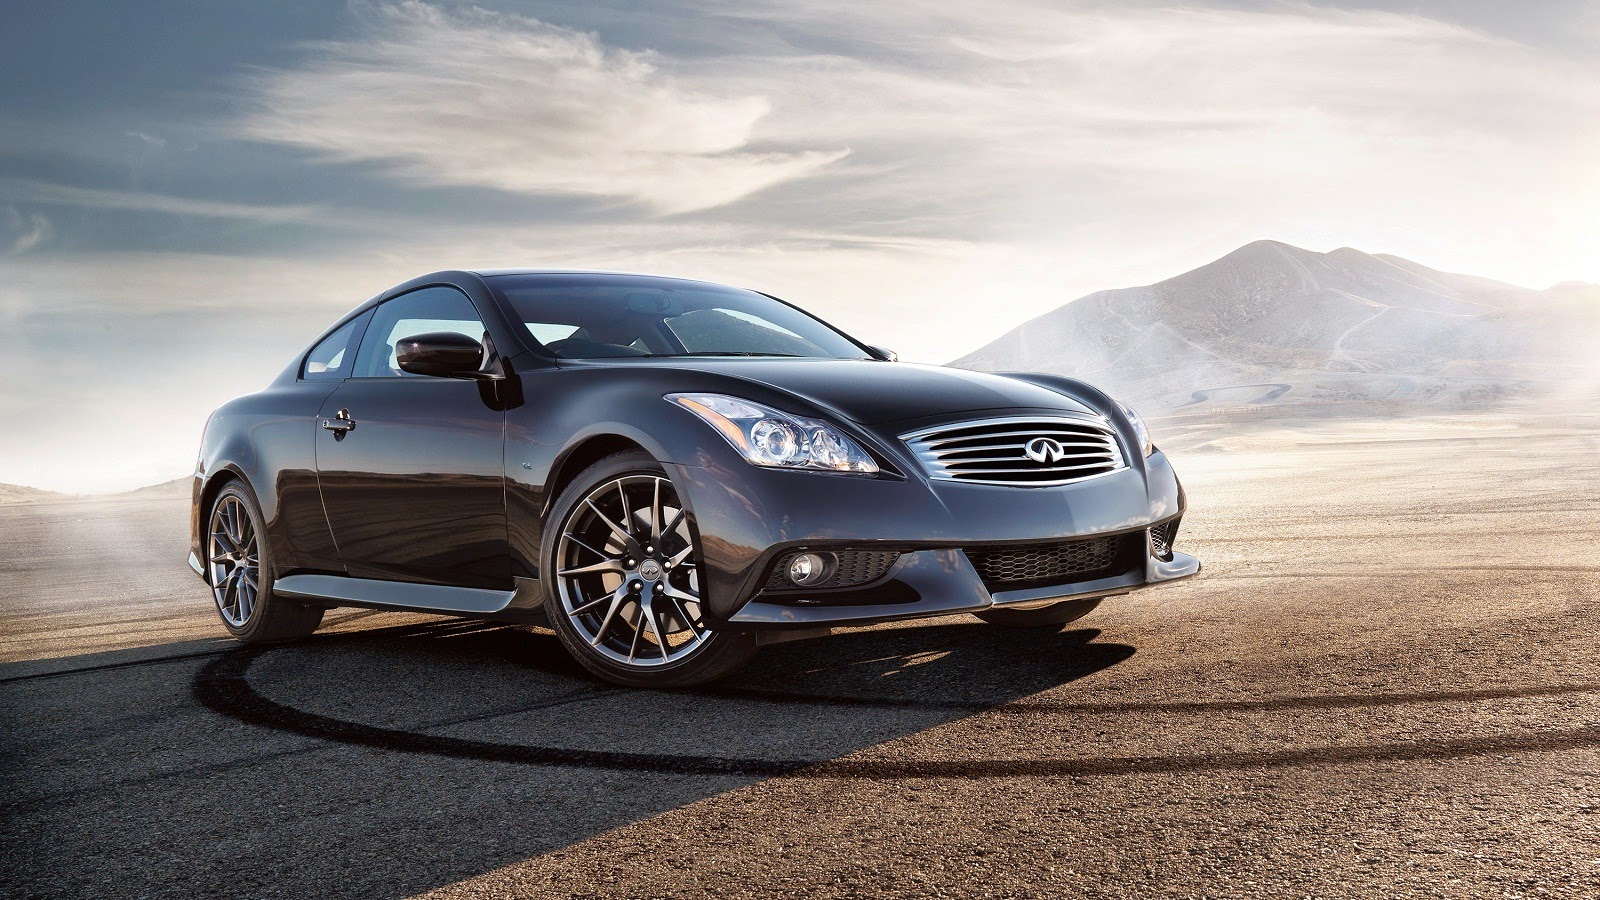 2020 Infiniti Q60 Coupe Ipl Redesign and Review